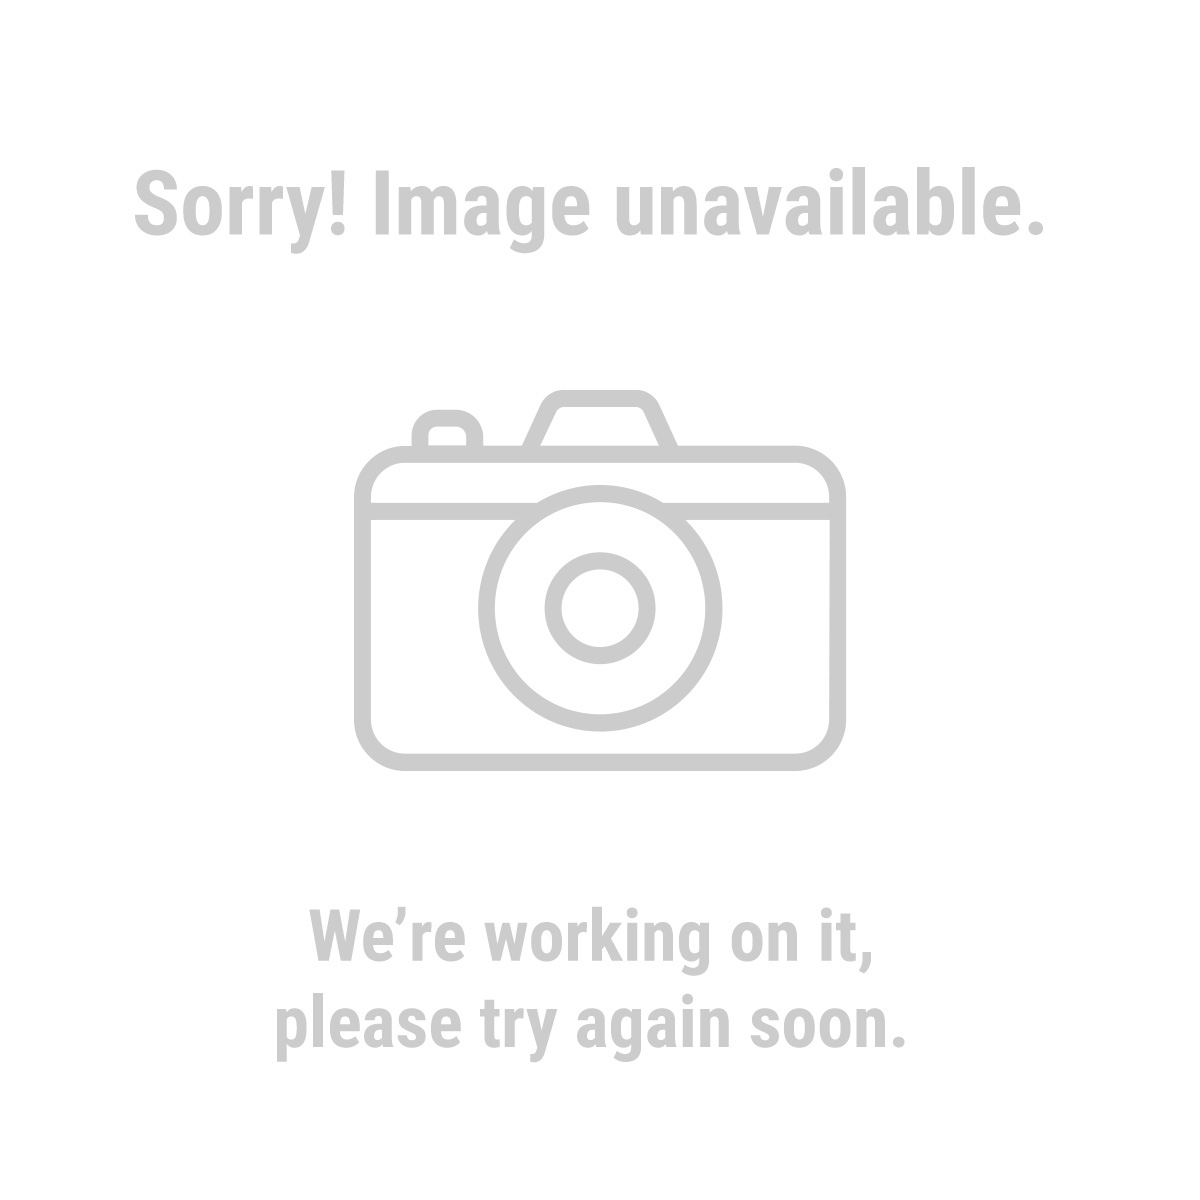 Bunker Hill Security® 61910 Wireless Security Alert System